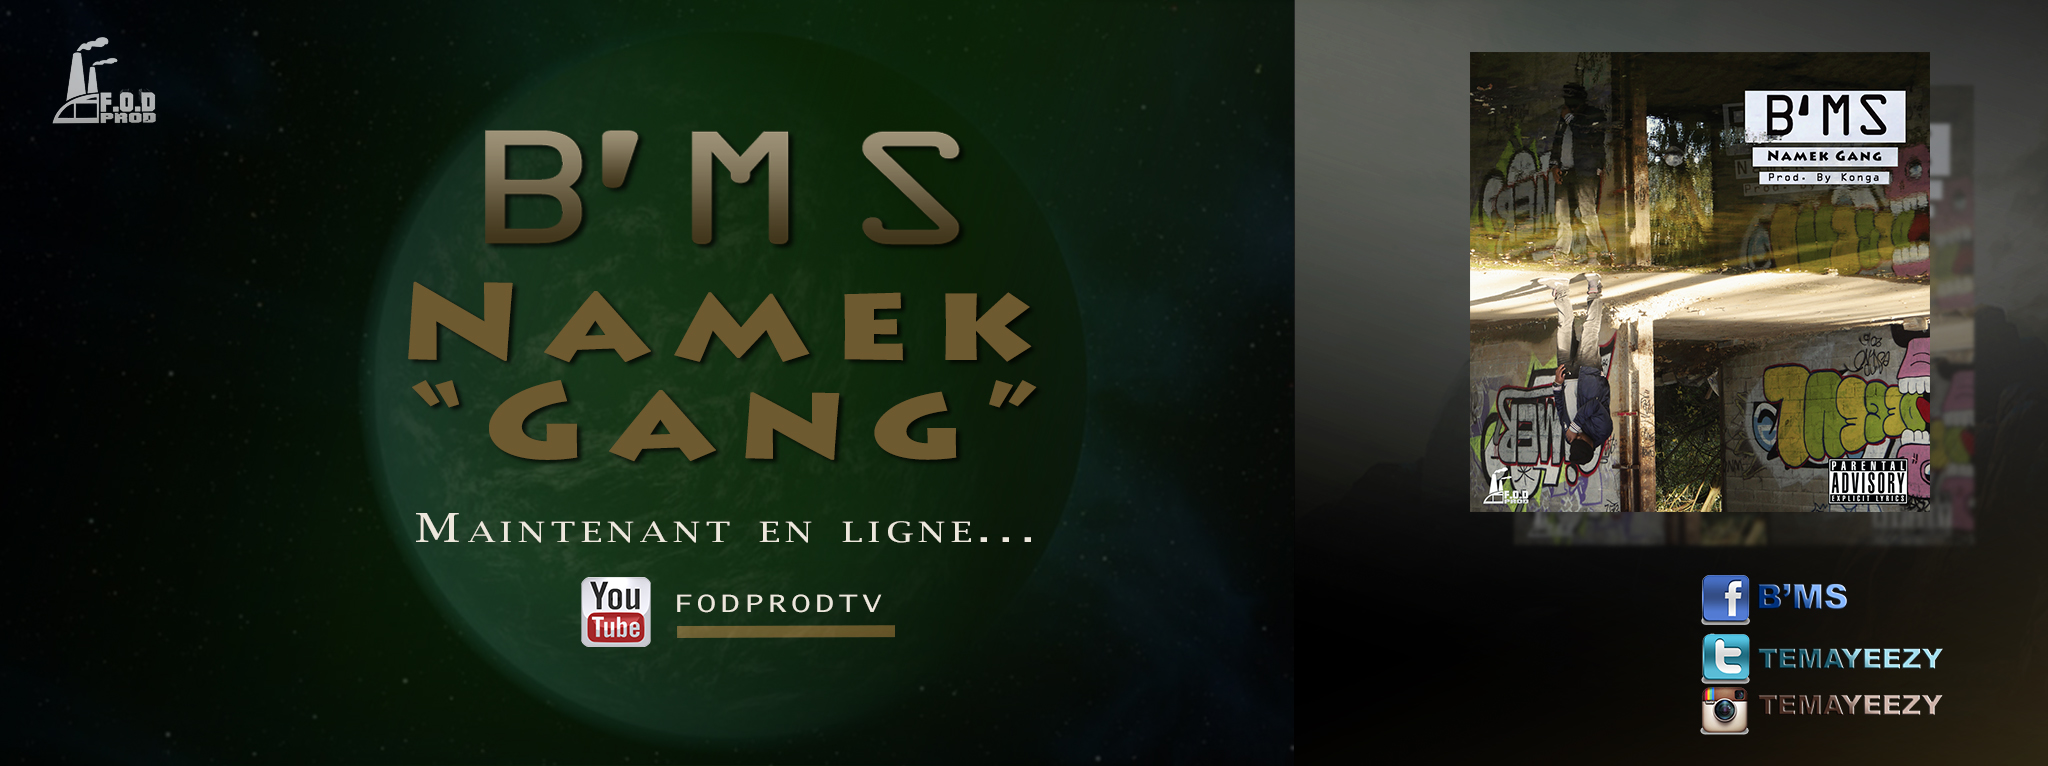 B'Ms – Namek Gang Banniere Clip